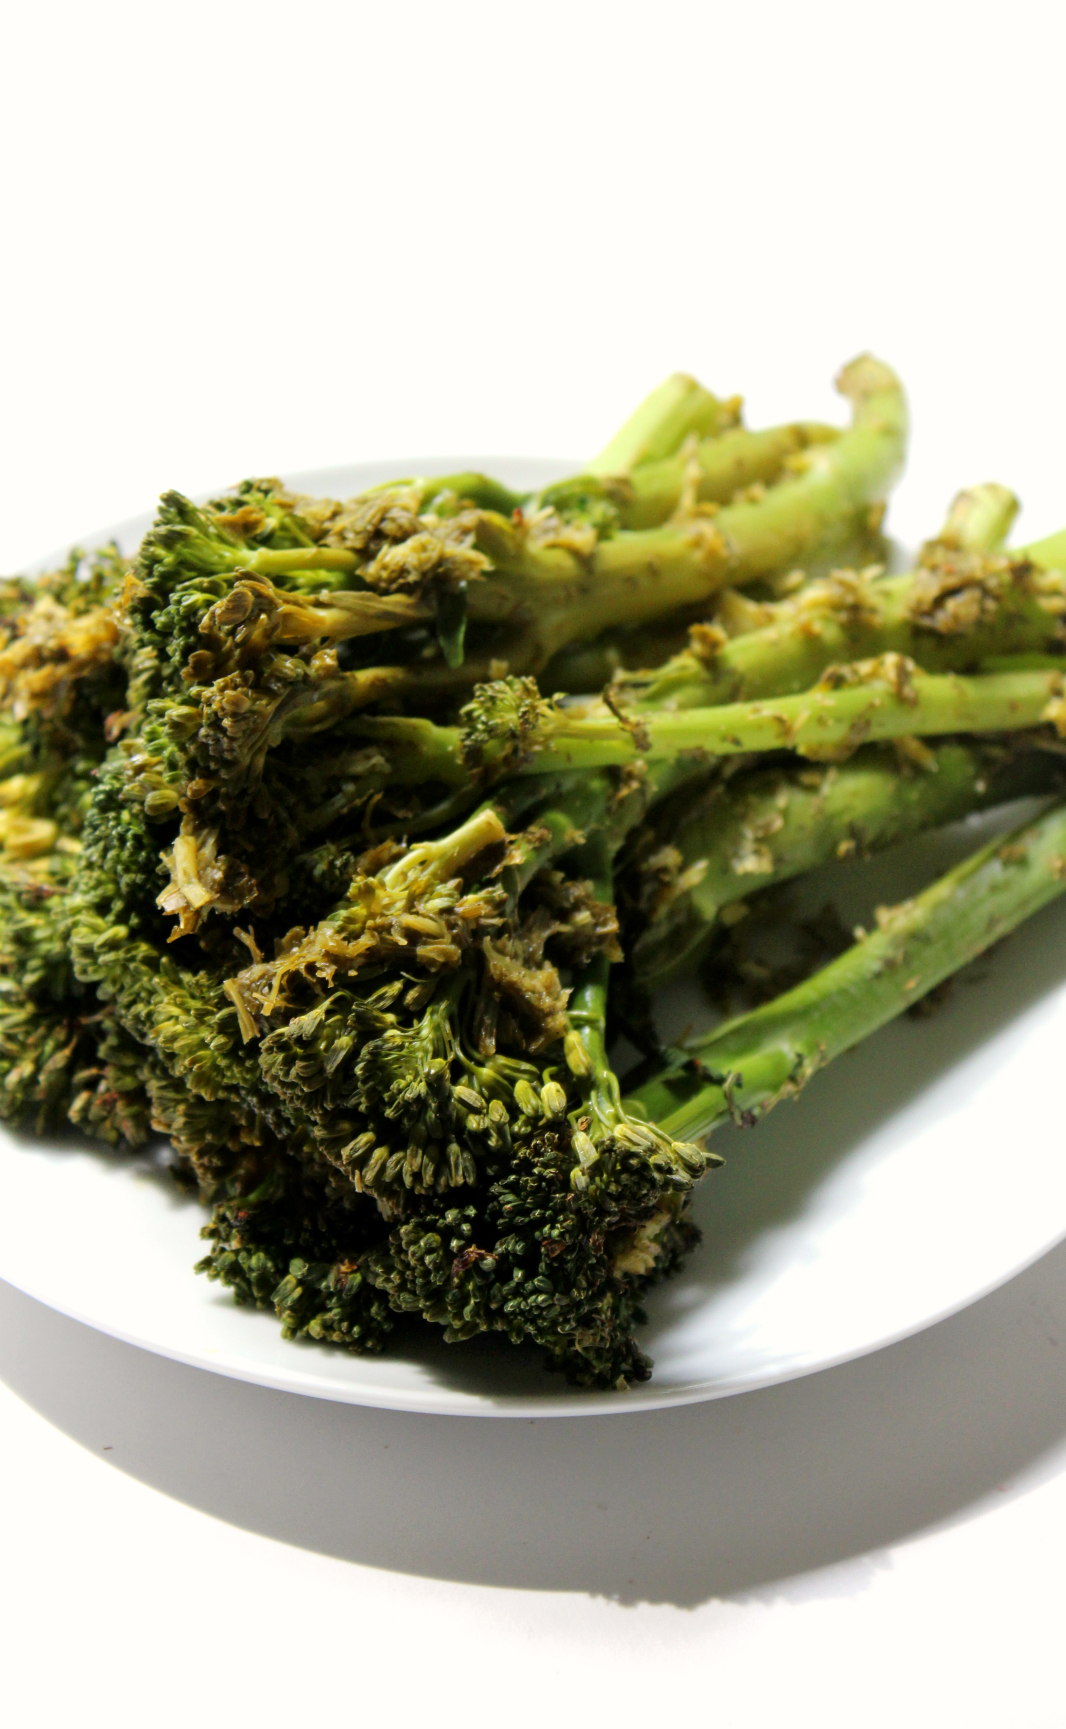 Roasted Broccolini With Lemon Garlic Herb Sauce